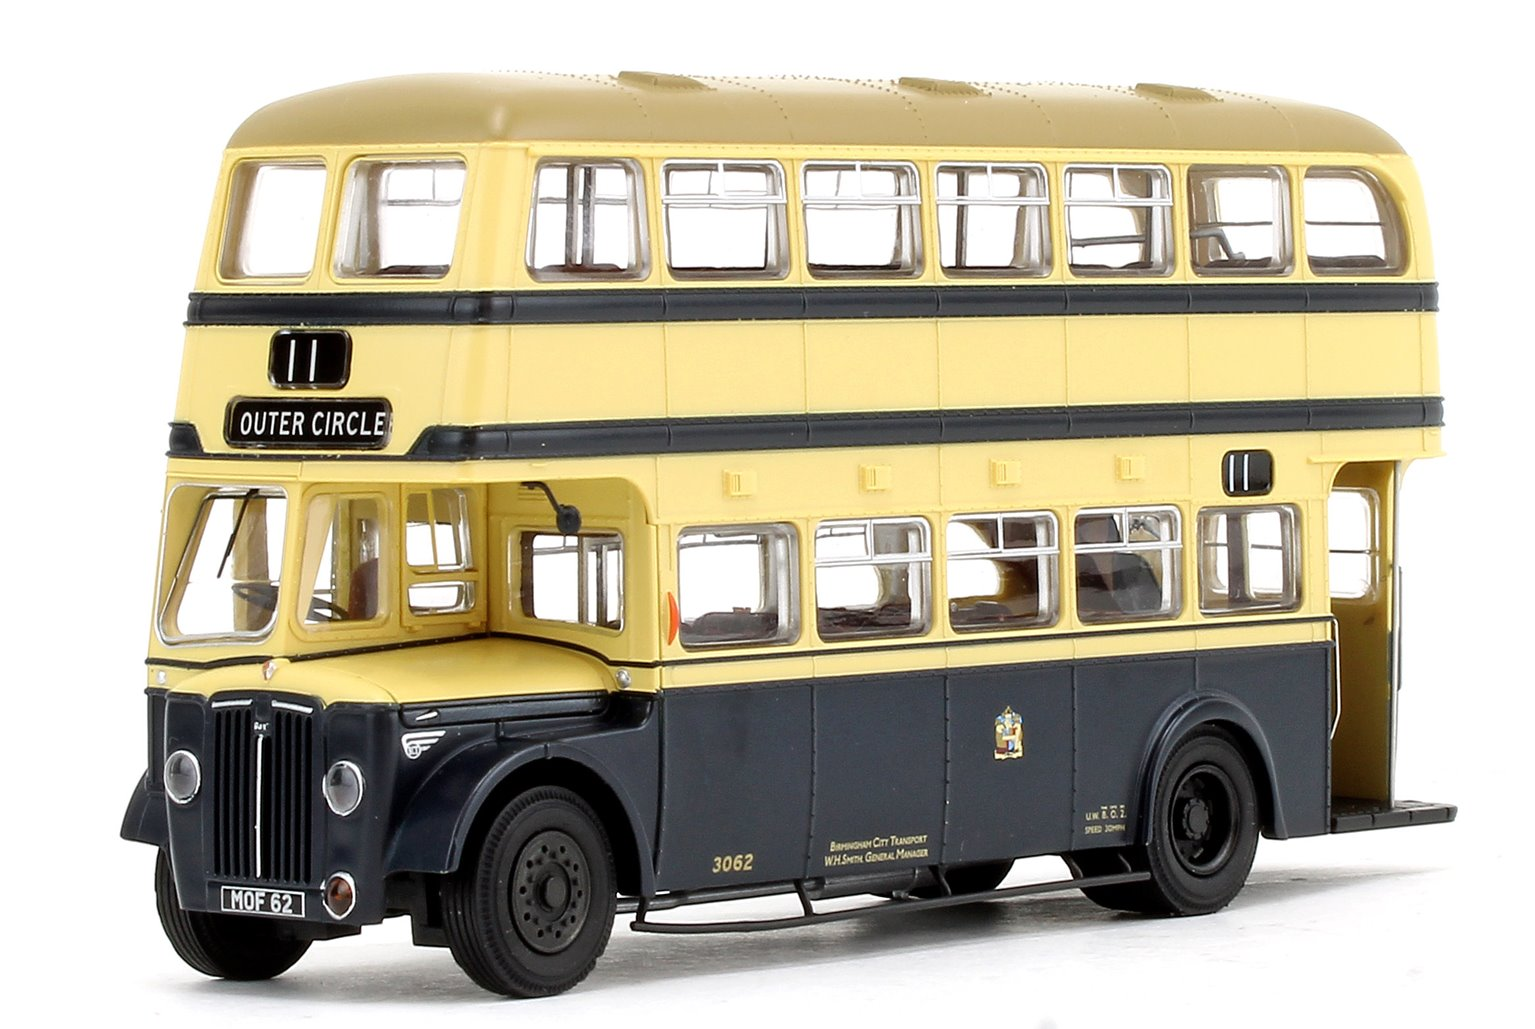 Deluxe Edition Birmingham City Transport (BCT) Blue/Cream with Khaki Roof Guy Arab IV with Metro-Cammell body - Fleet No.3062 - 11 Outer Circle - Licence No. MOF 62 (Gold Numbers)